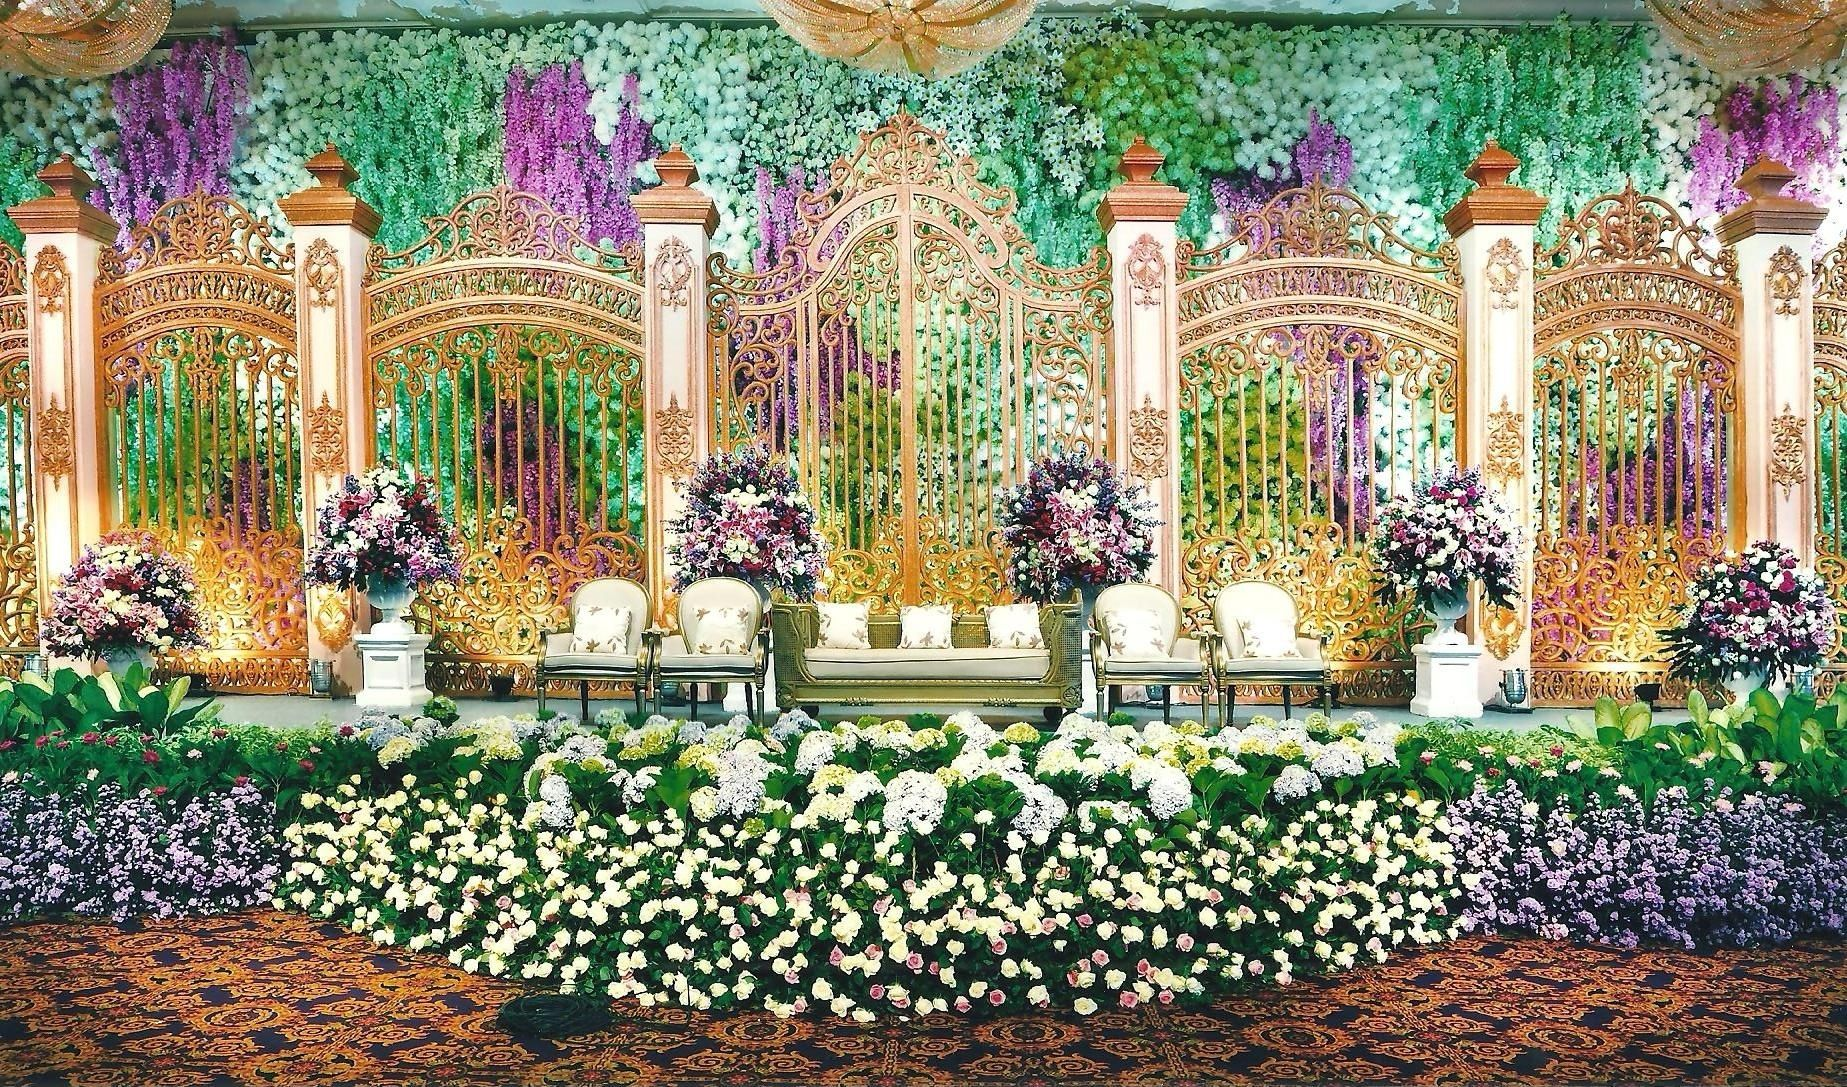 The magnificent golden gates altar for wedding decoration project the magnificent golden gates altar for wedding decoration project by suryanto decoration http junglespirit Images